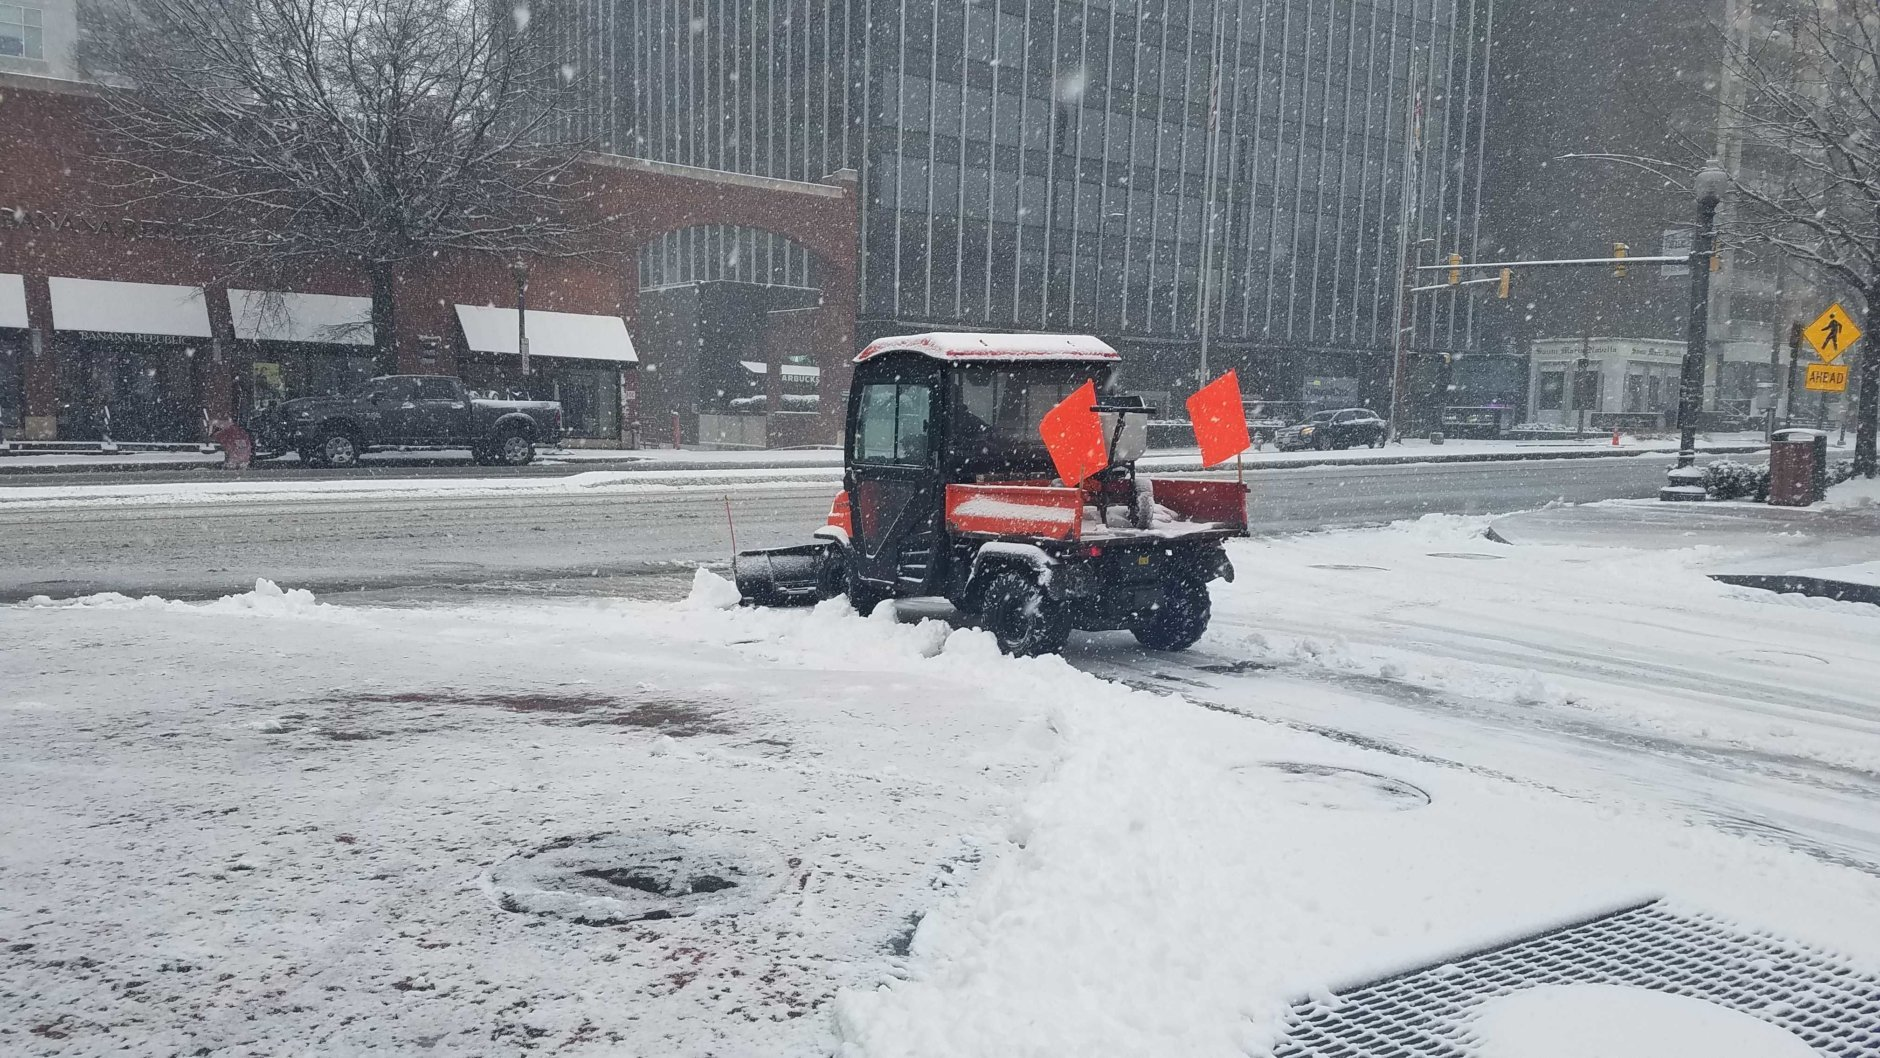 A plow fights the buildup of snow in Chevy Chase. (WTOP/Will Vitka)